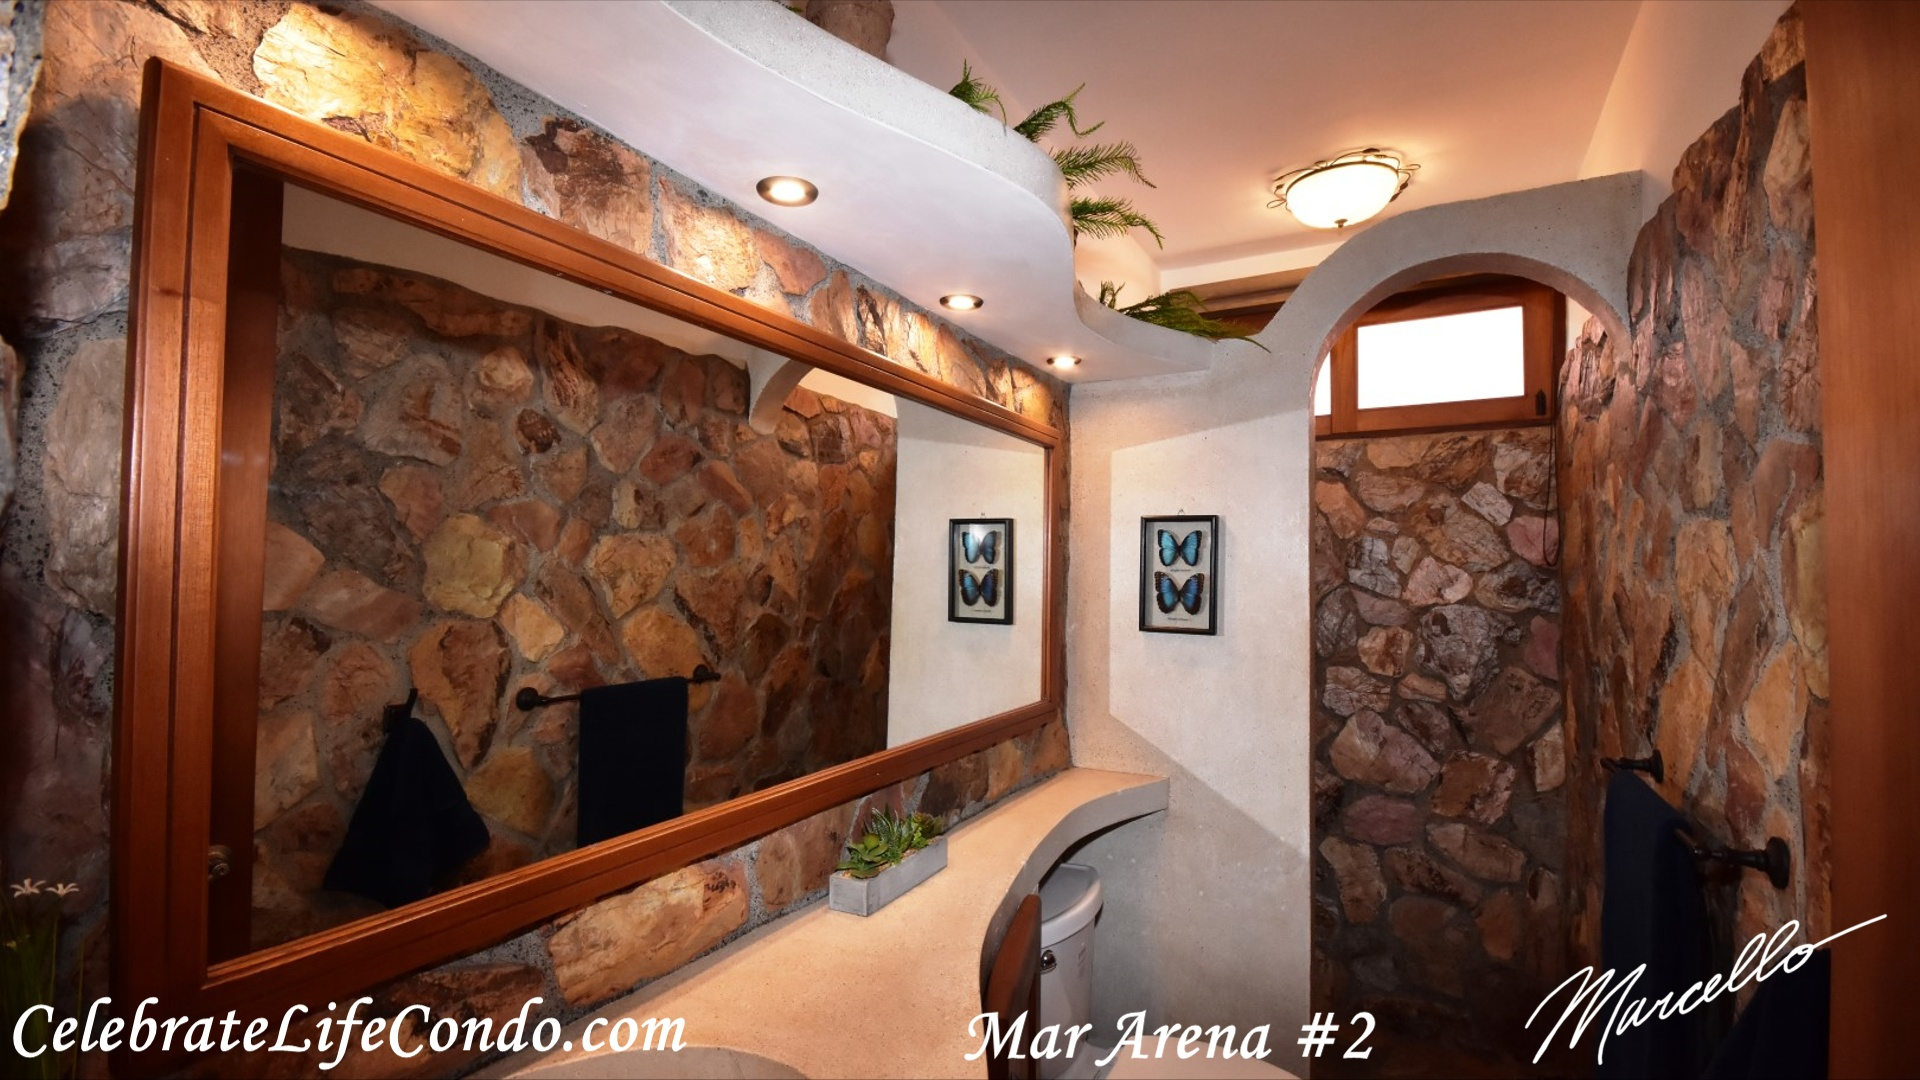 Celebrate Life Condo  Luxury Ocean Front Rental - www.MarcelloPedalino.com